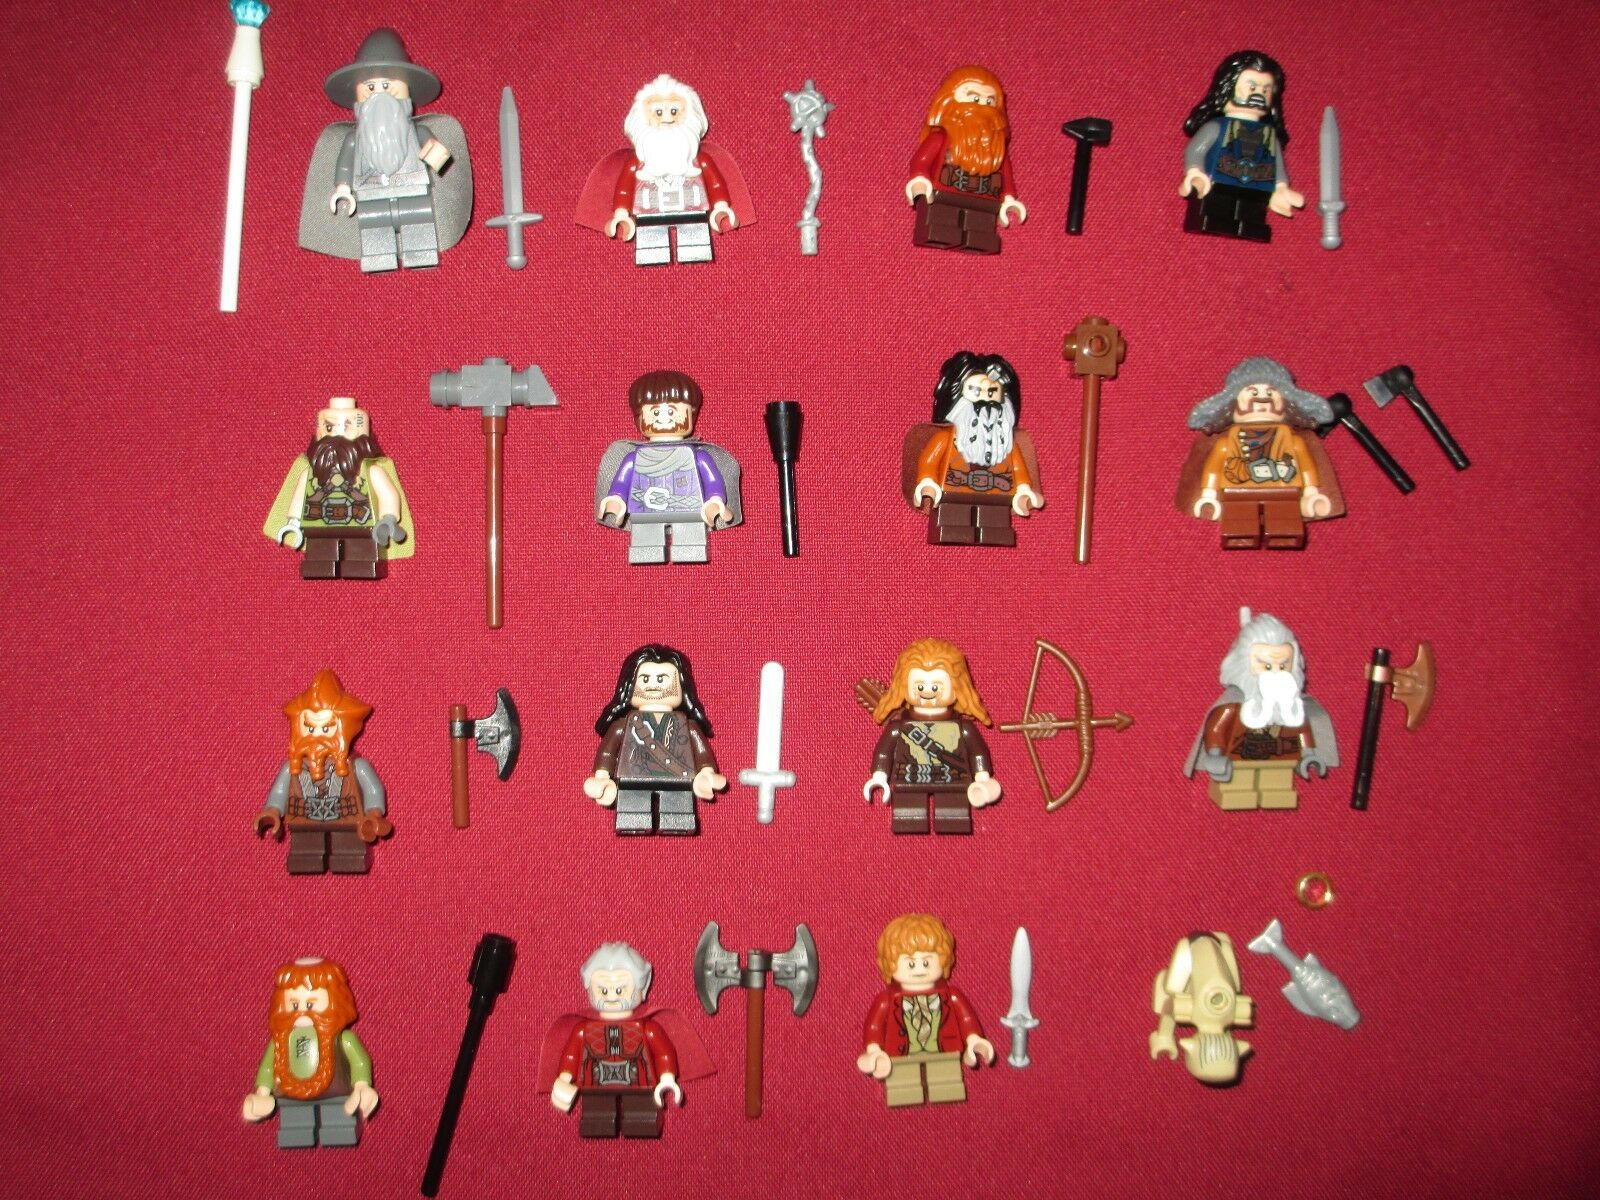 LEGO Minifigures LOTR / Hobbit Minifigures LEGO Lot, Dwarves,Gollum,Gandolf,Weapons ETC 9430bf